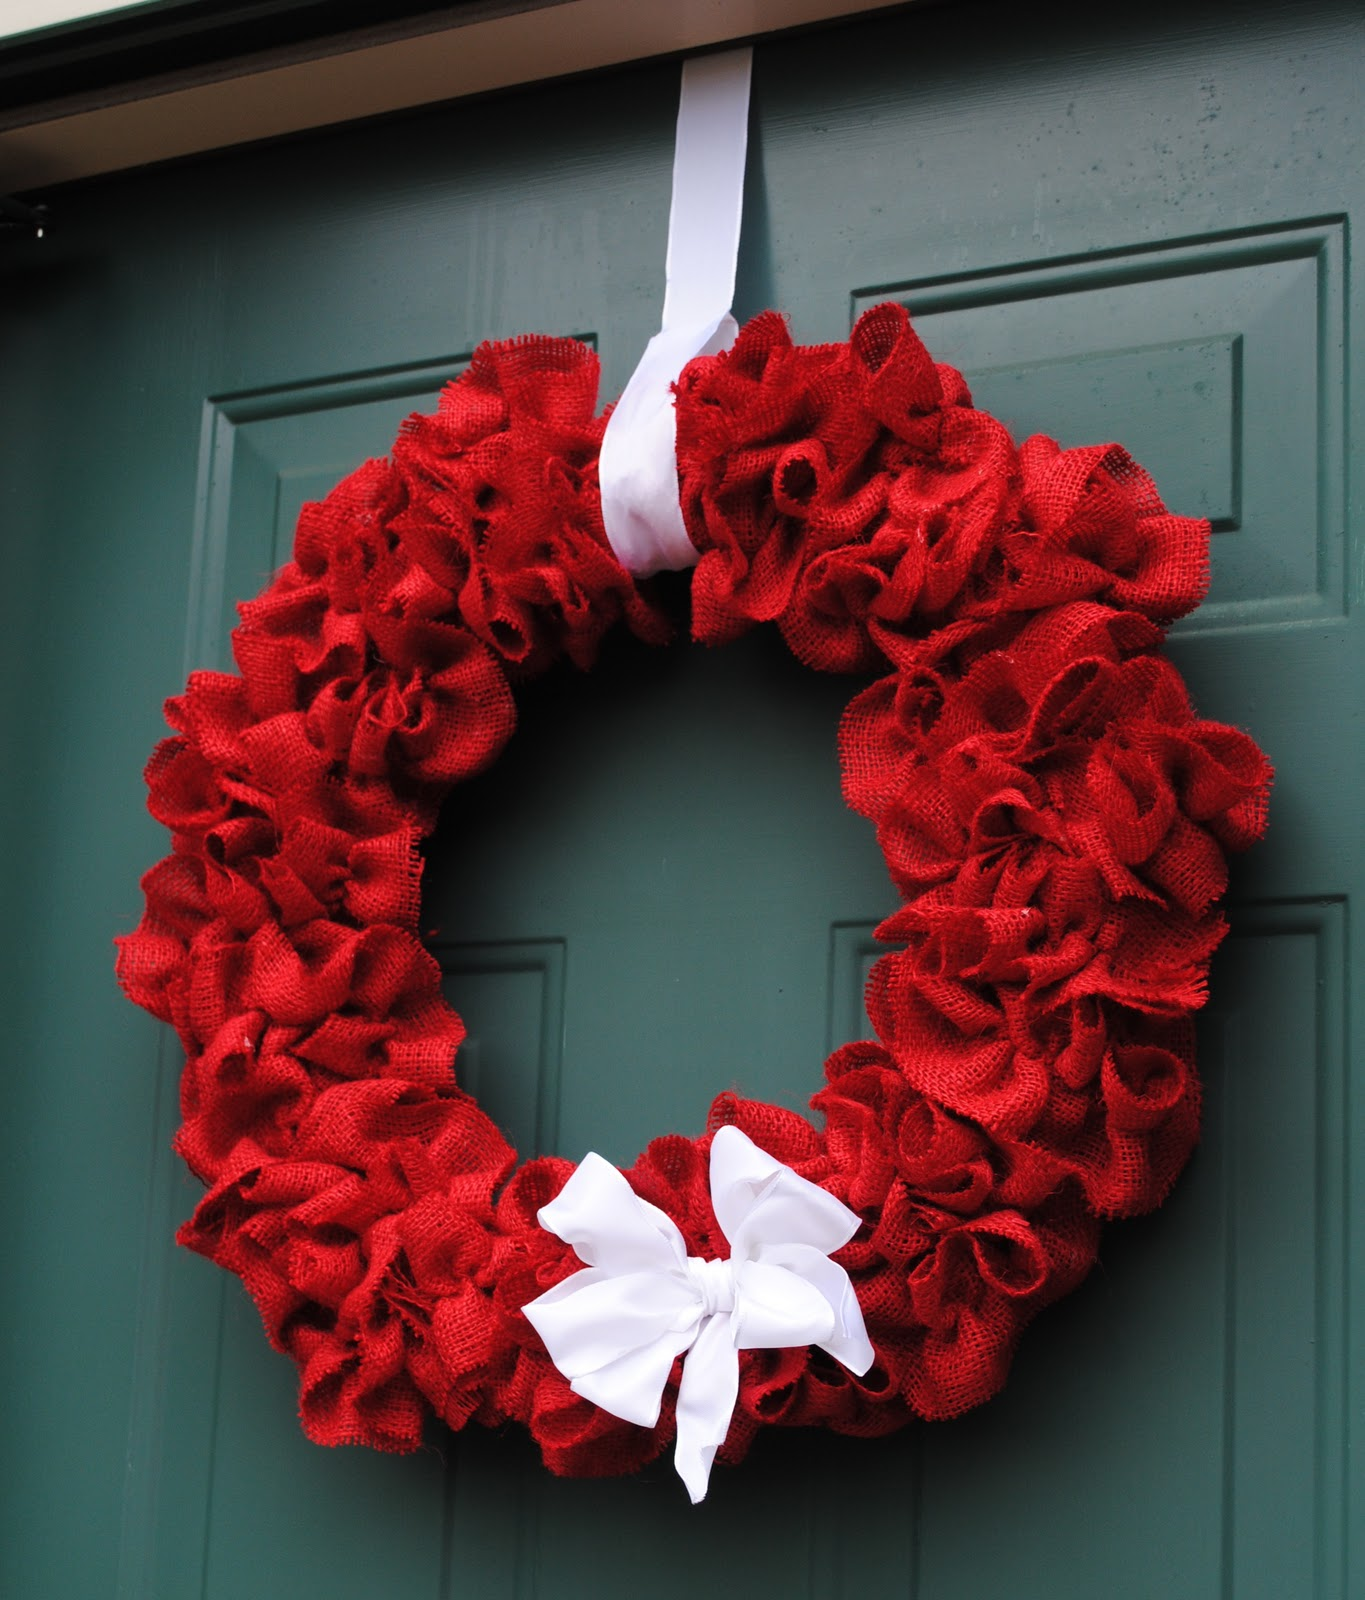 New south design ruffled burlap wreath for 20 Christmas wreaths to make